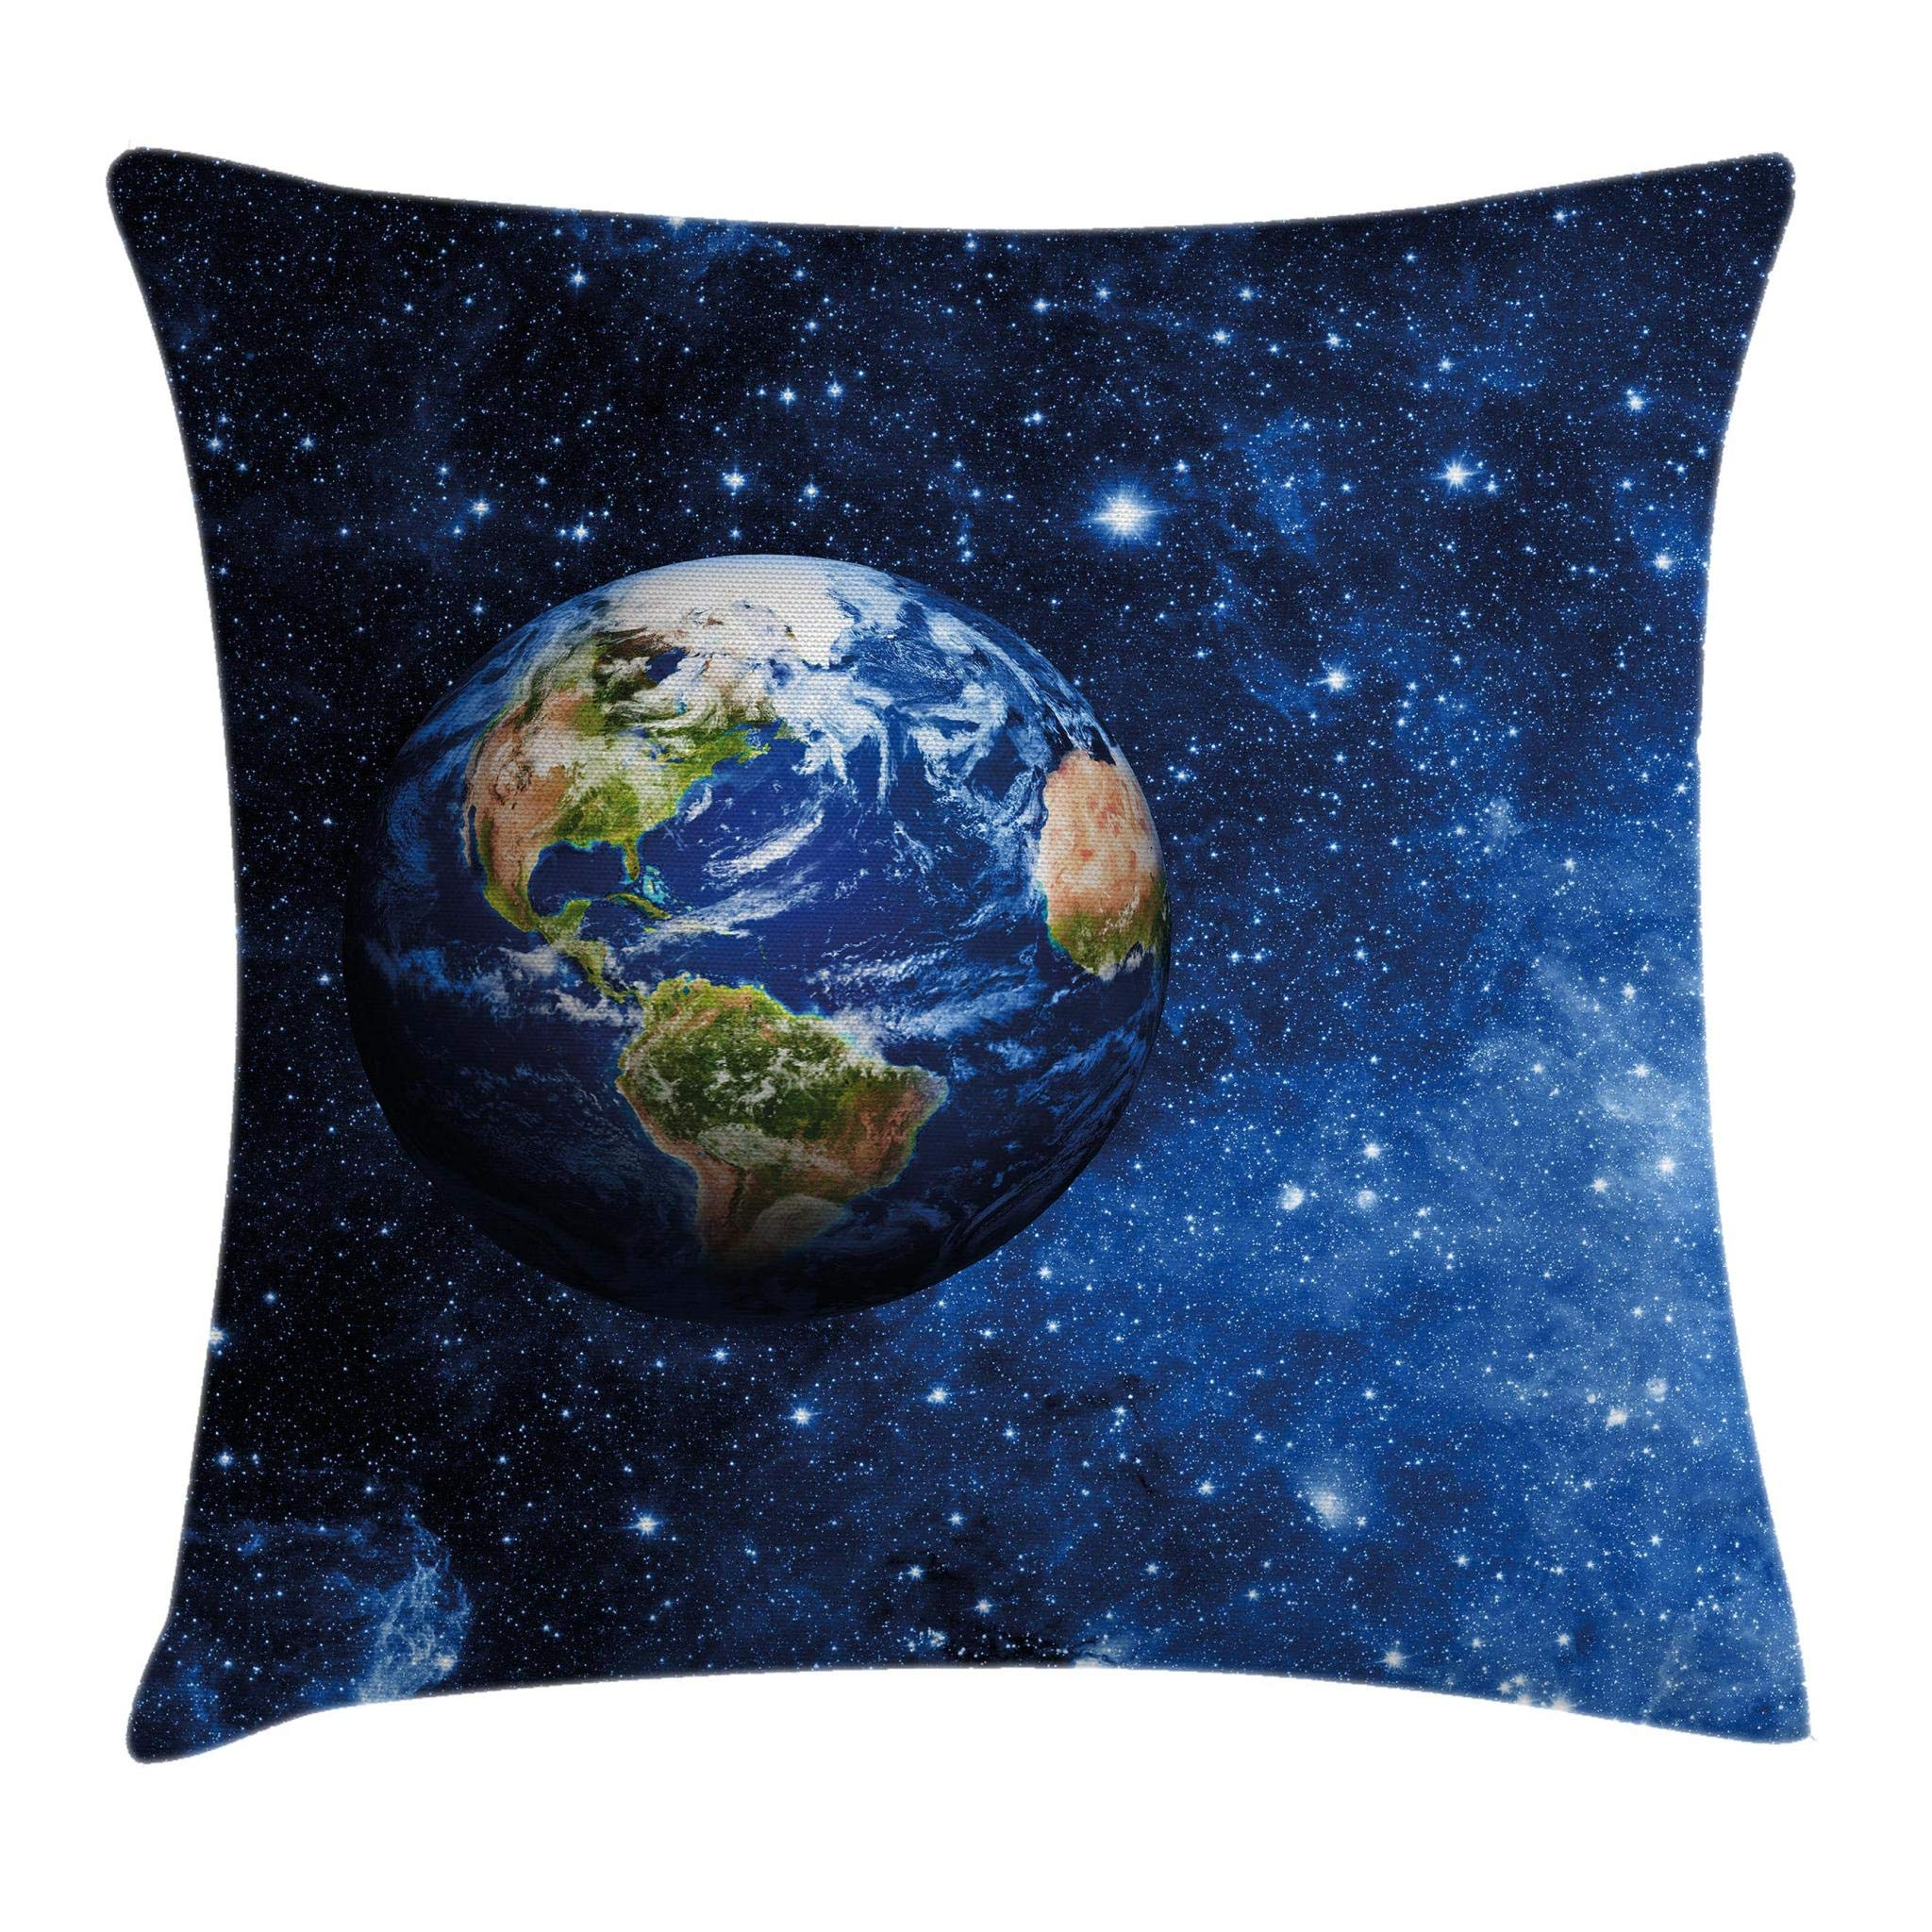 Ambesonne Space Throw Pillow Cushion Cover, Outer View of Planet Earth in Solar System with Stars Life on Globe Themed Image, Decorative Square Accent Pillow Case, 18 X18 Inches, Blue Green